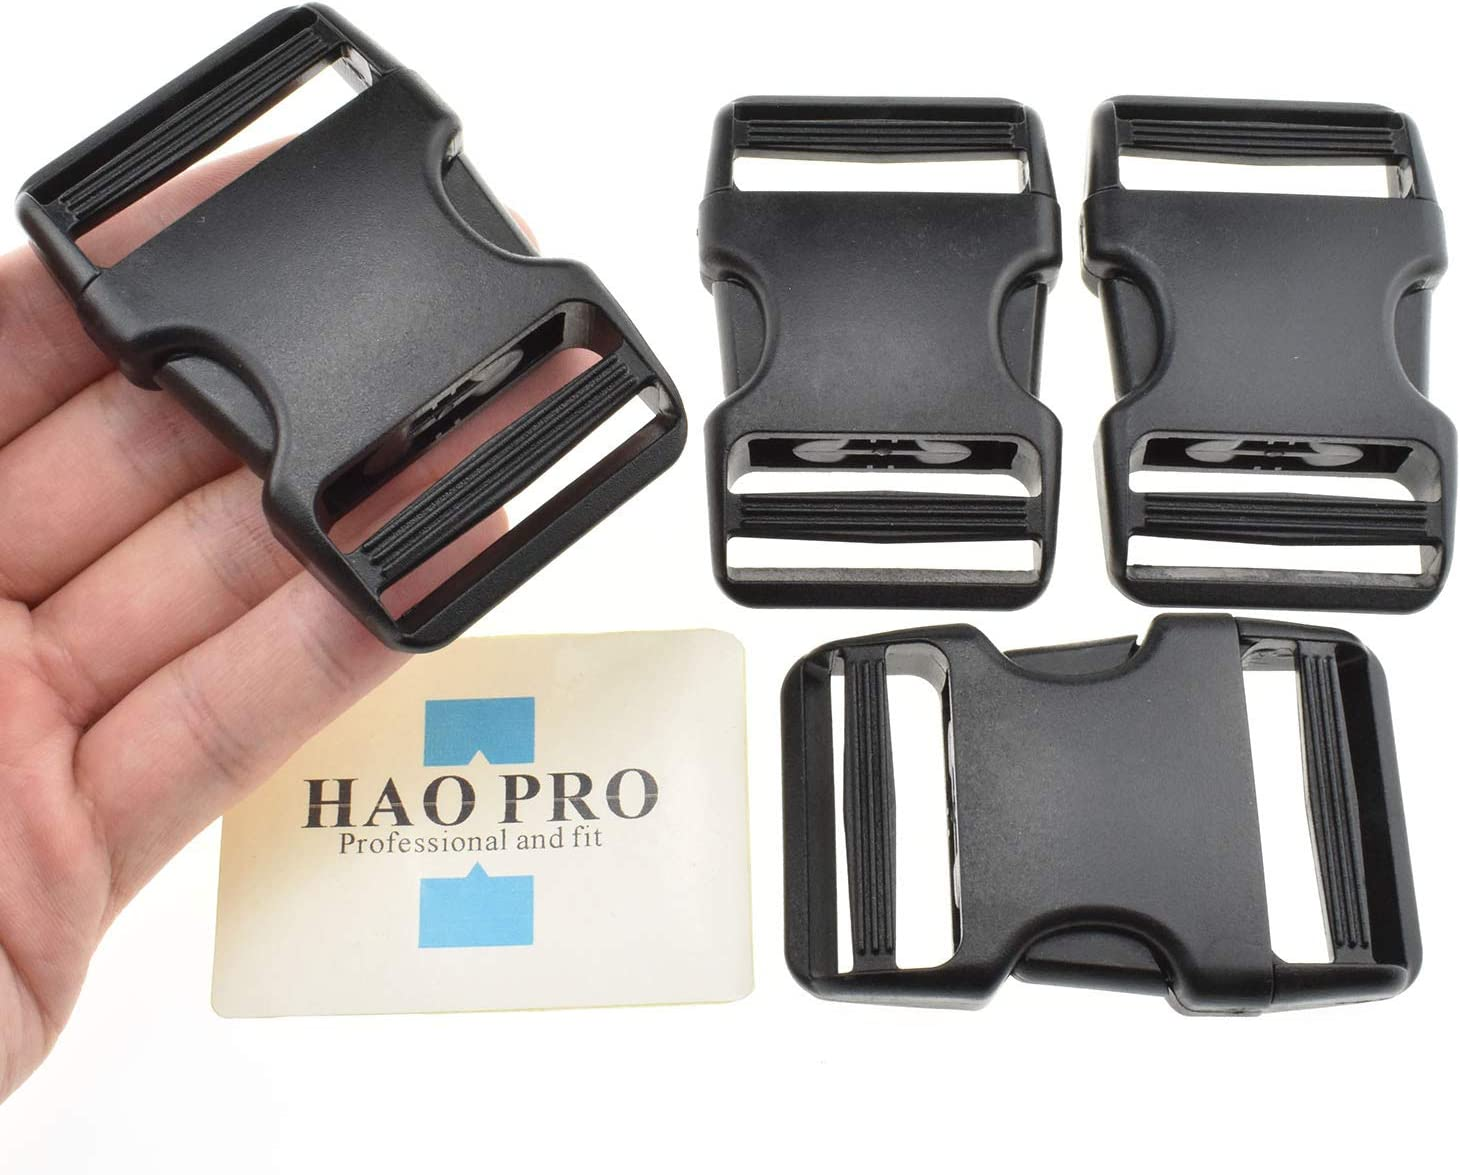 HAO PRO Quick Side Release Buckles Clips Snaps Dual Adjustable No Sewing Heavy Duty Plastic 1.5 Wide 2 Pack Replacement for Nylon Strap Boat Cover Backpack Fanny Pack Nylon Webbing Belt Dog Collars